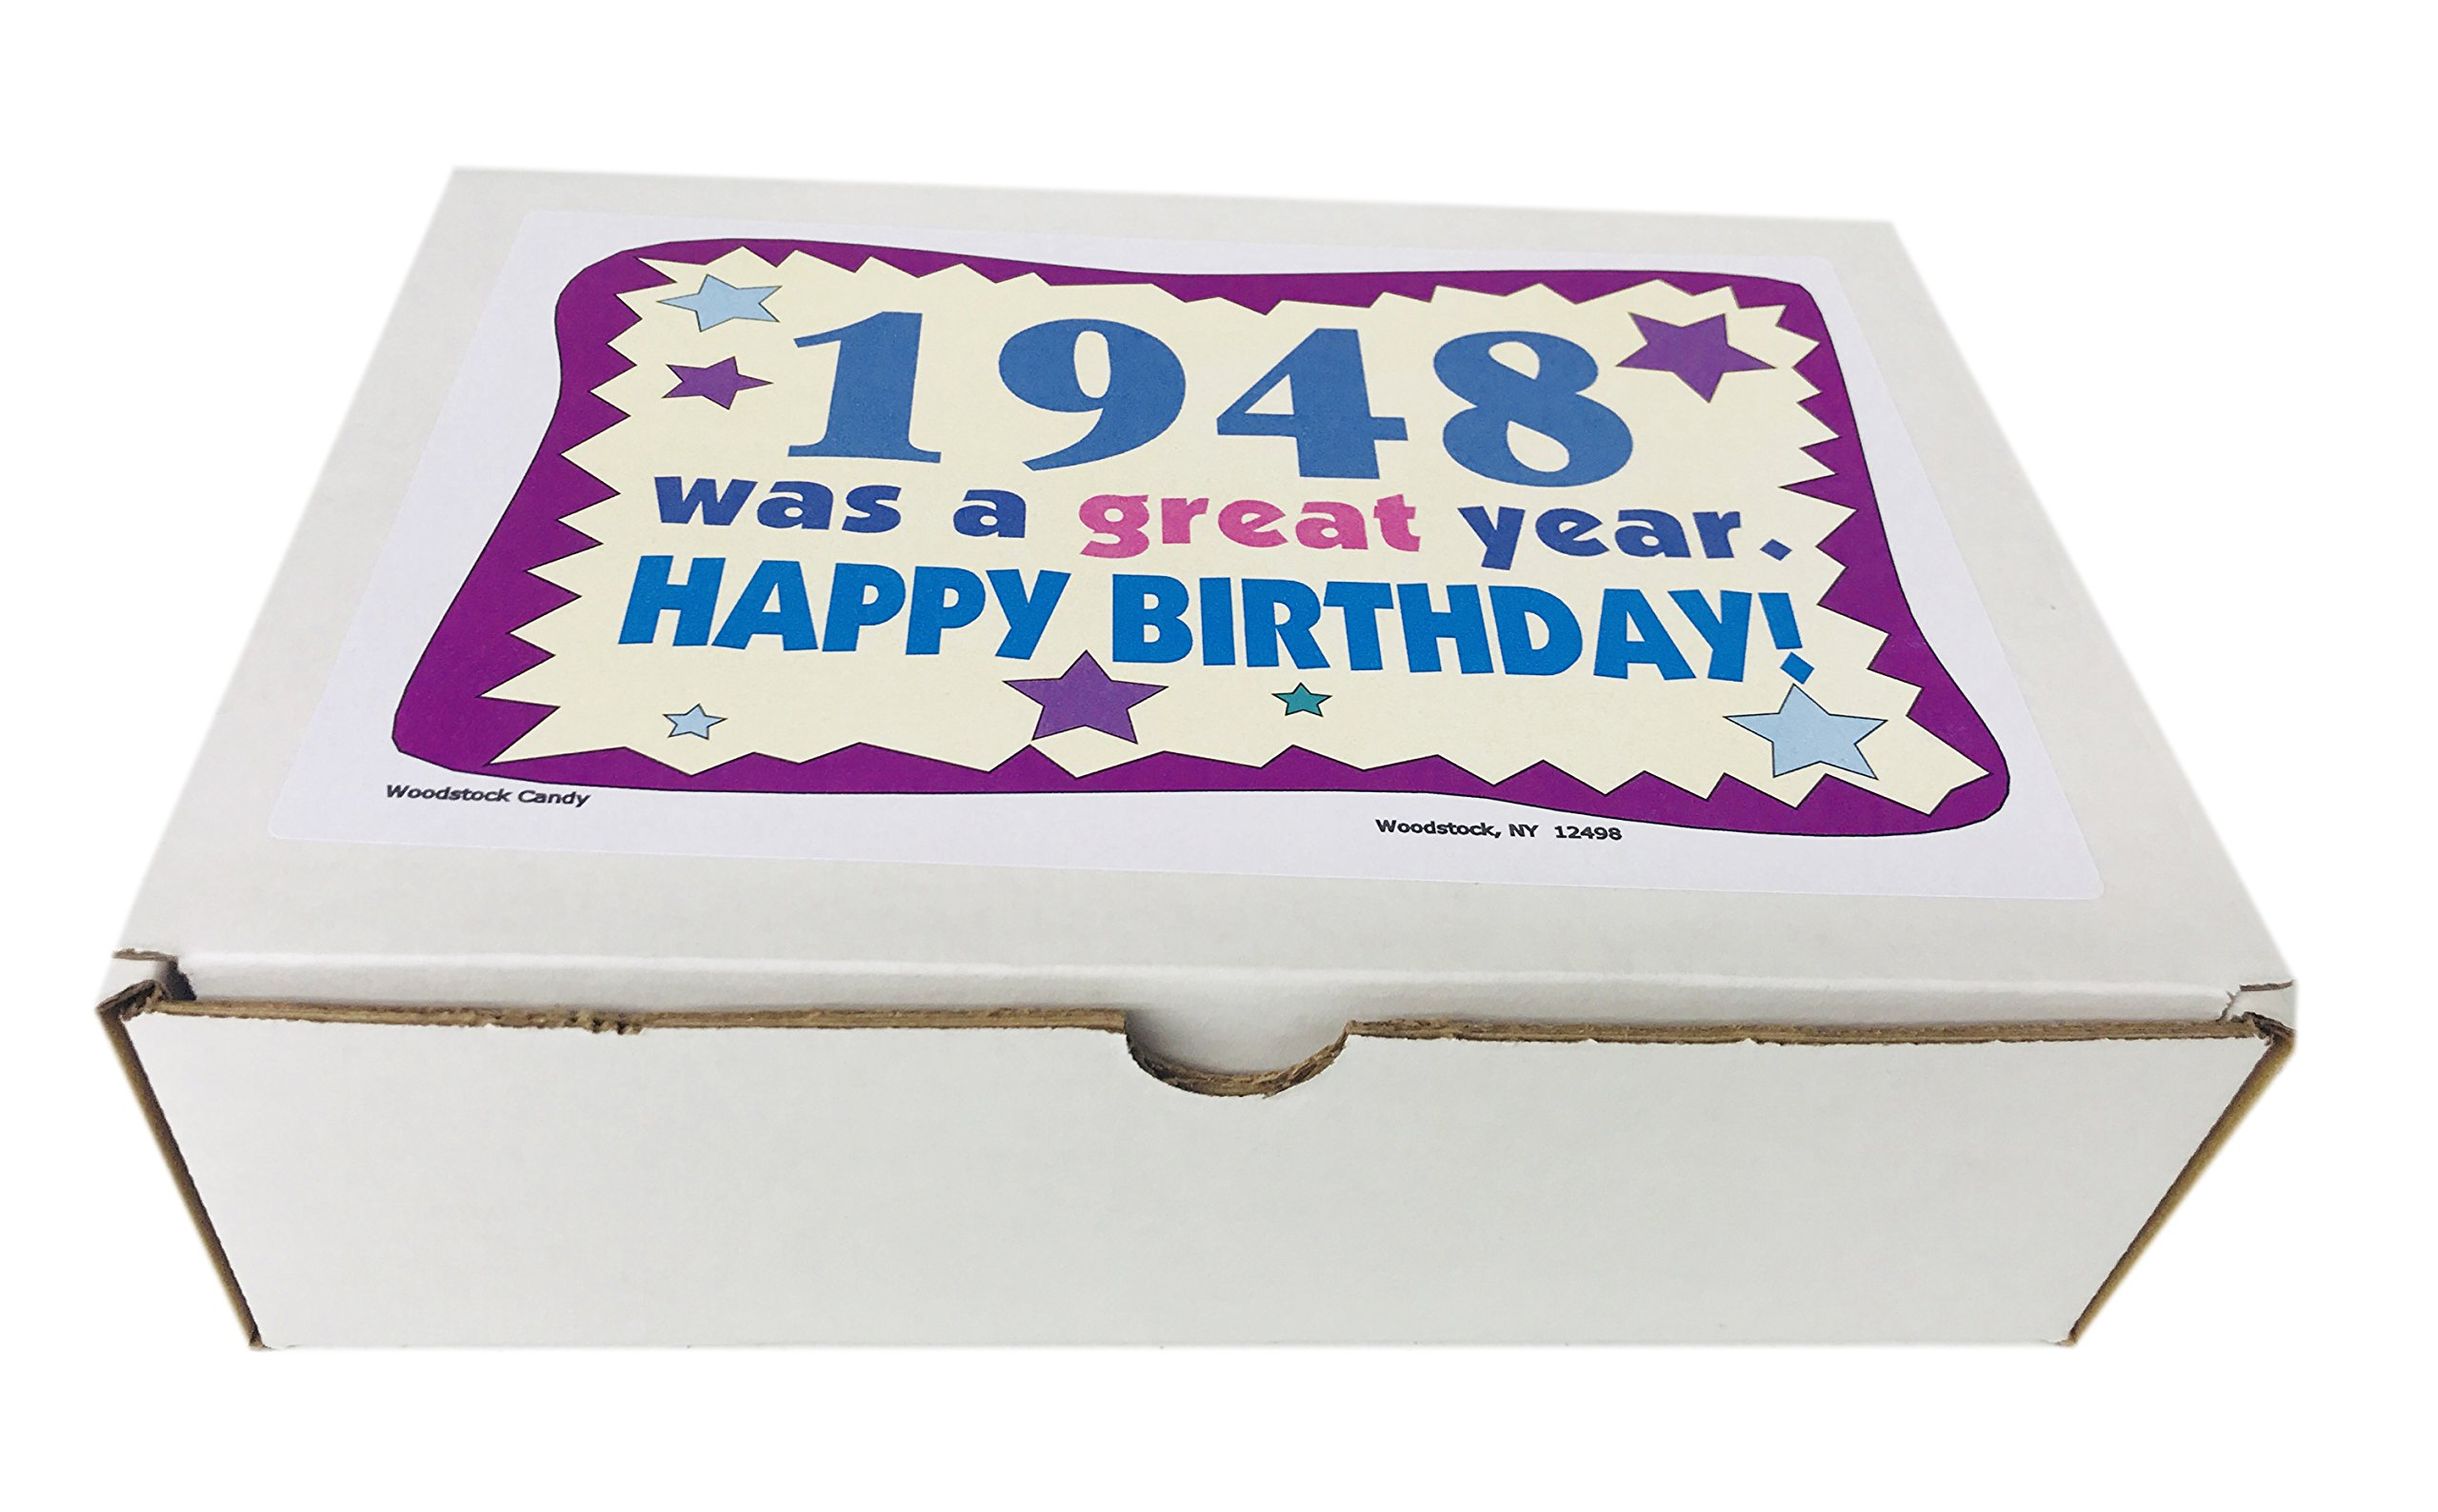 Woodstock Candy 1948 70th Birthday Gift Box Nostalgic Retro Mix For 70 Year Old Man Or Woman Born Jr Chocolate Gifts Grocery